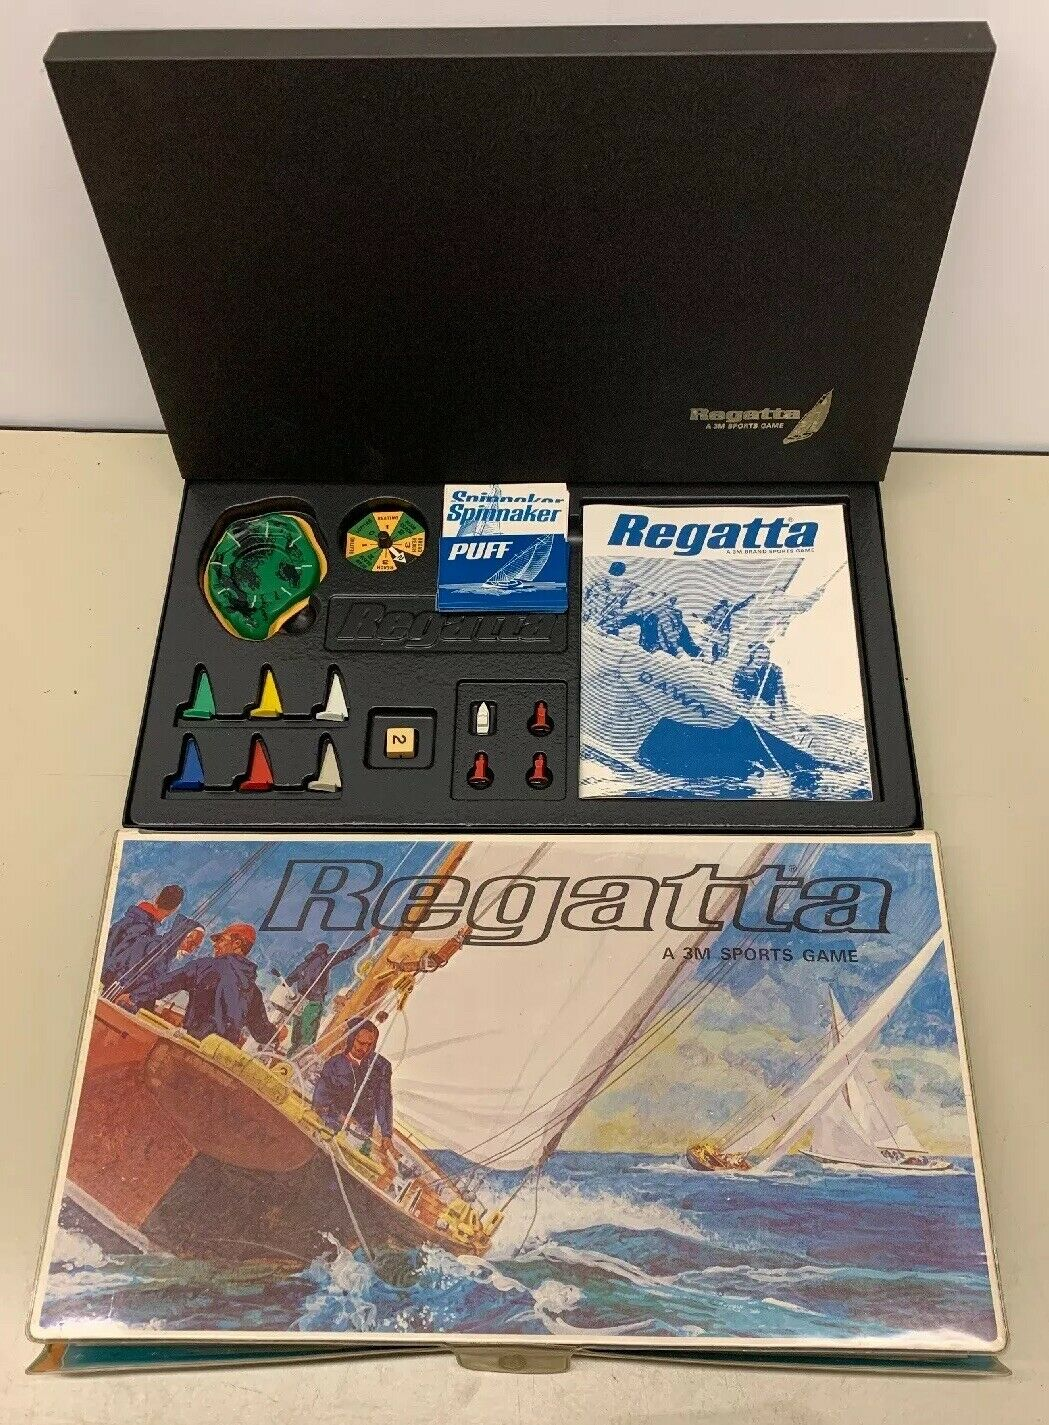 Regatta 3M Yacht Racing Game Complete All Pieces Accounted For No Damage Vintage